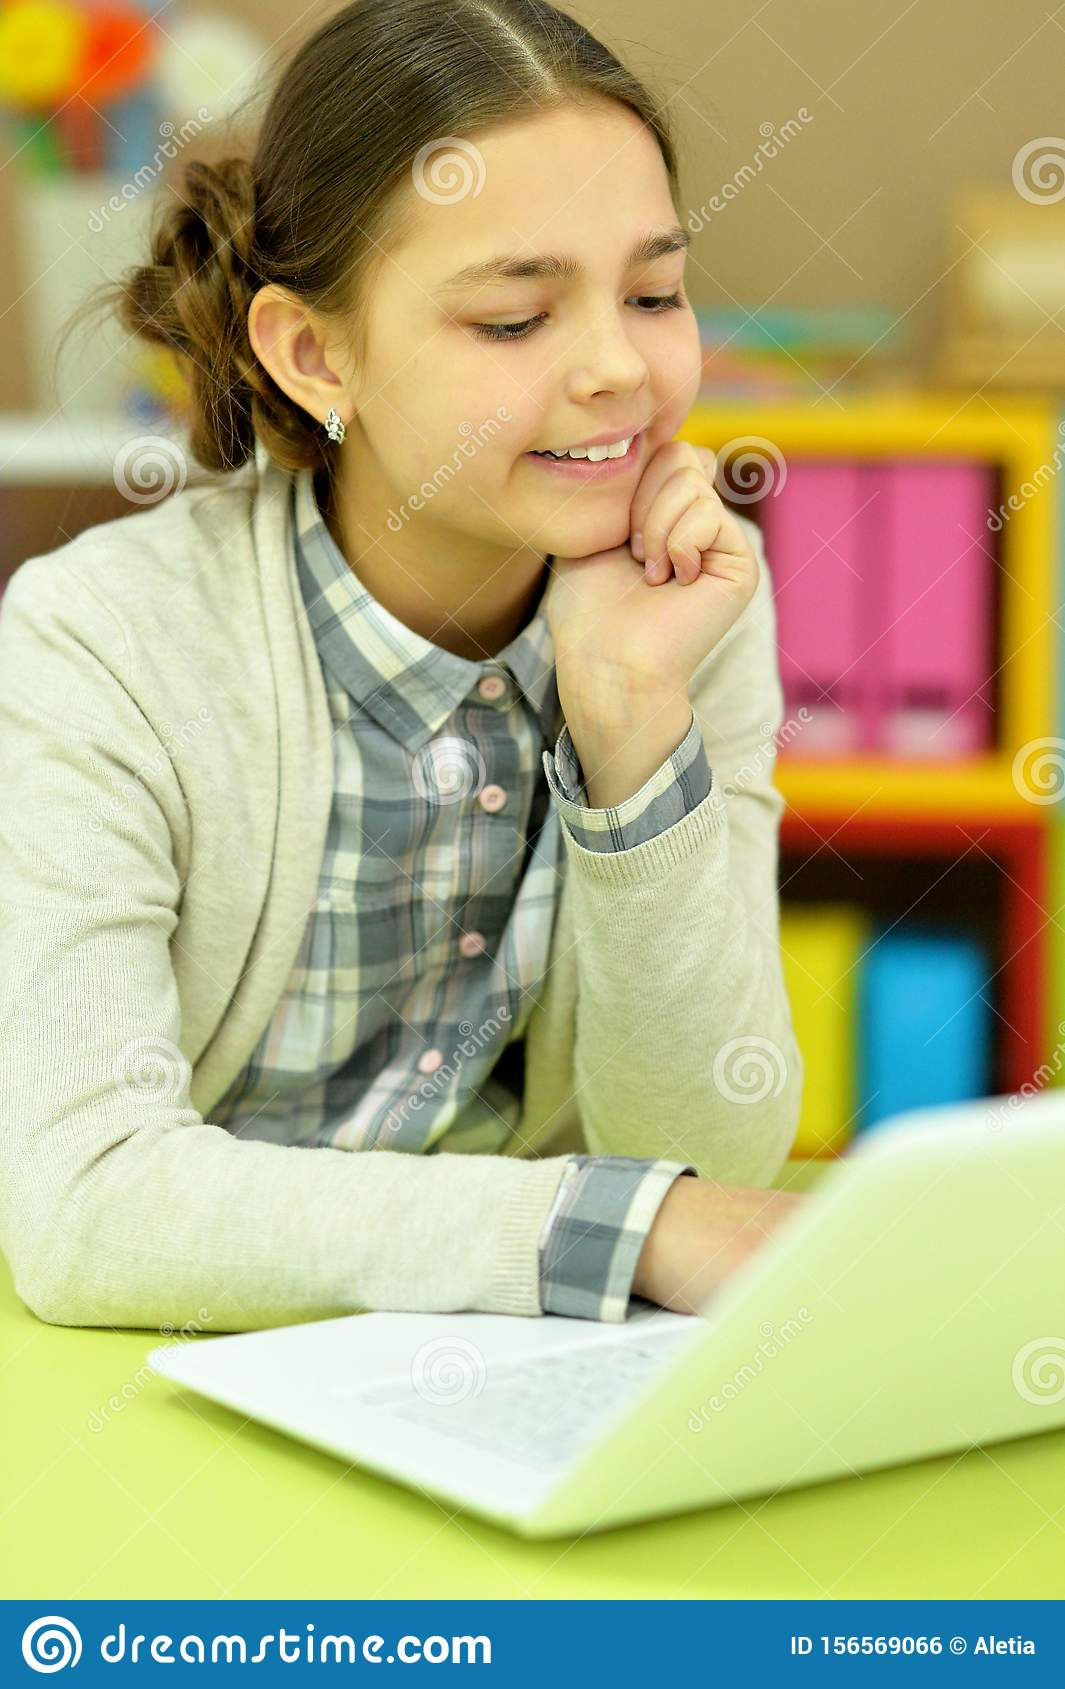 Portrait of concentrated little girl with laptop studying